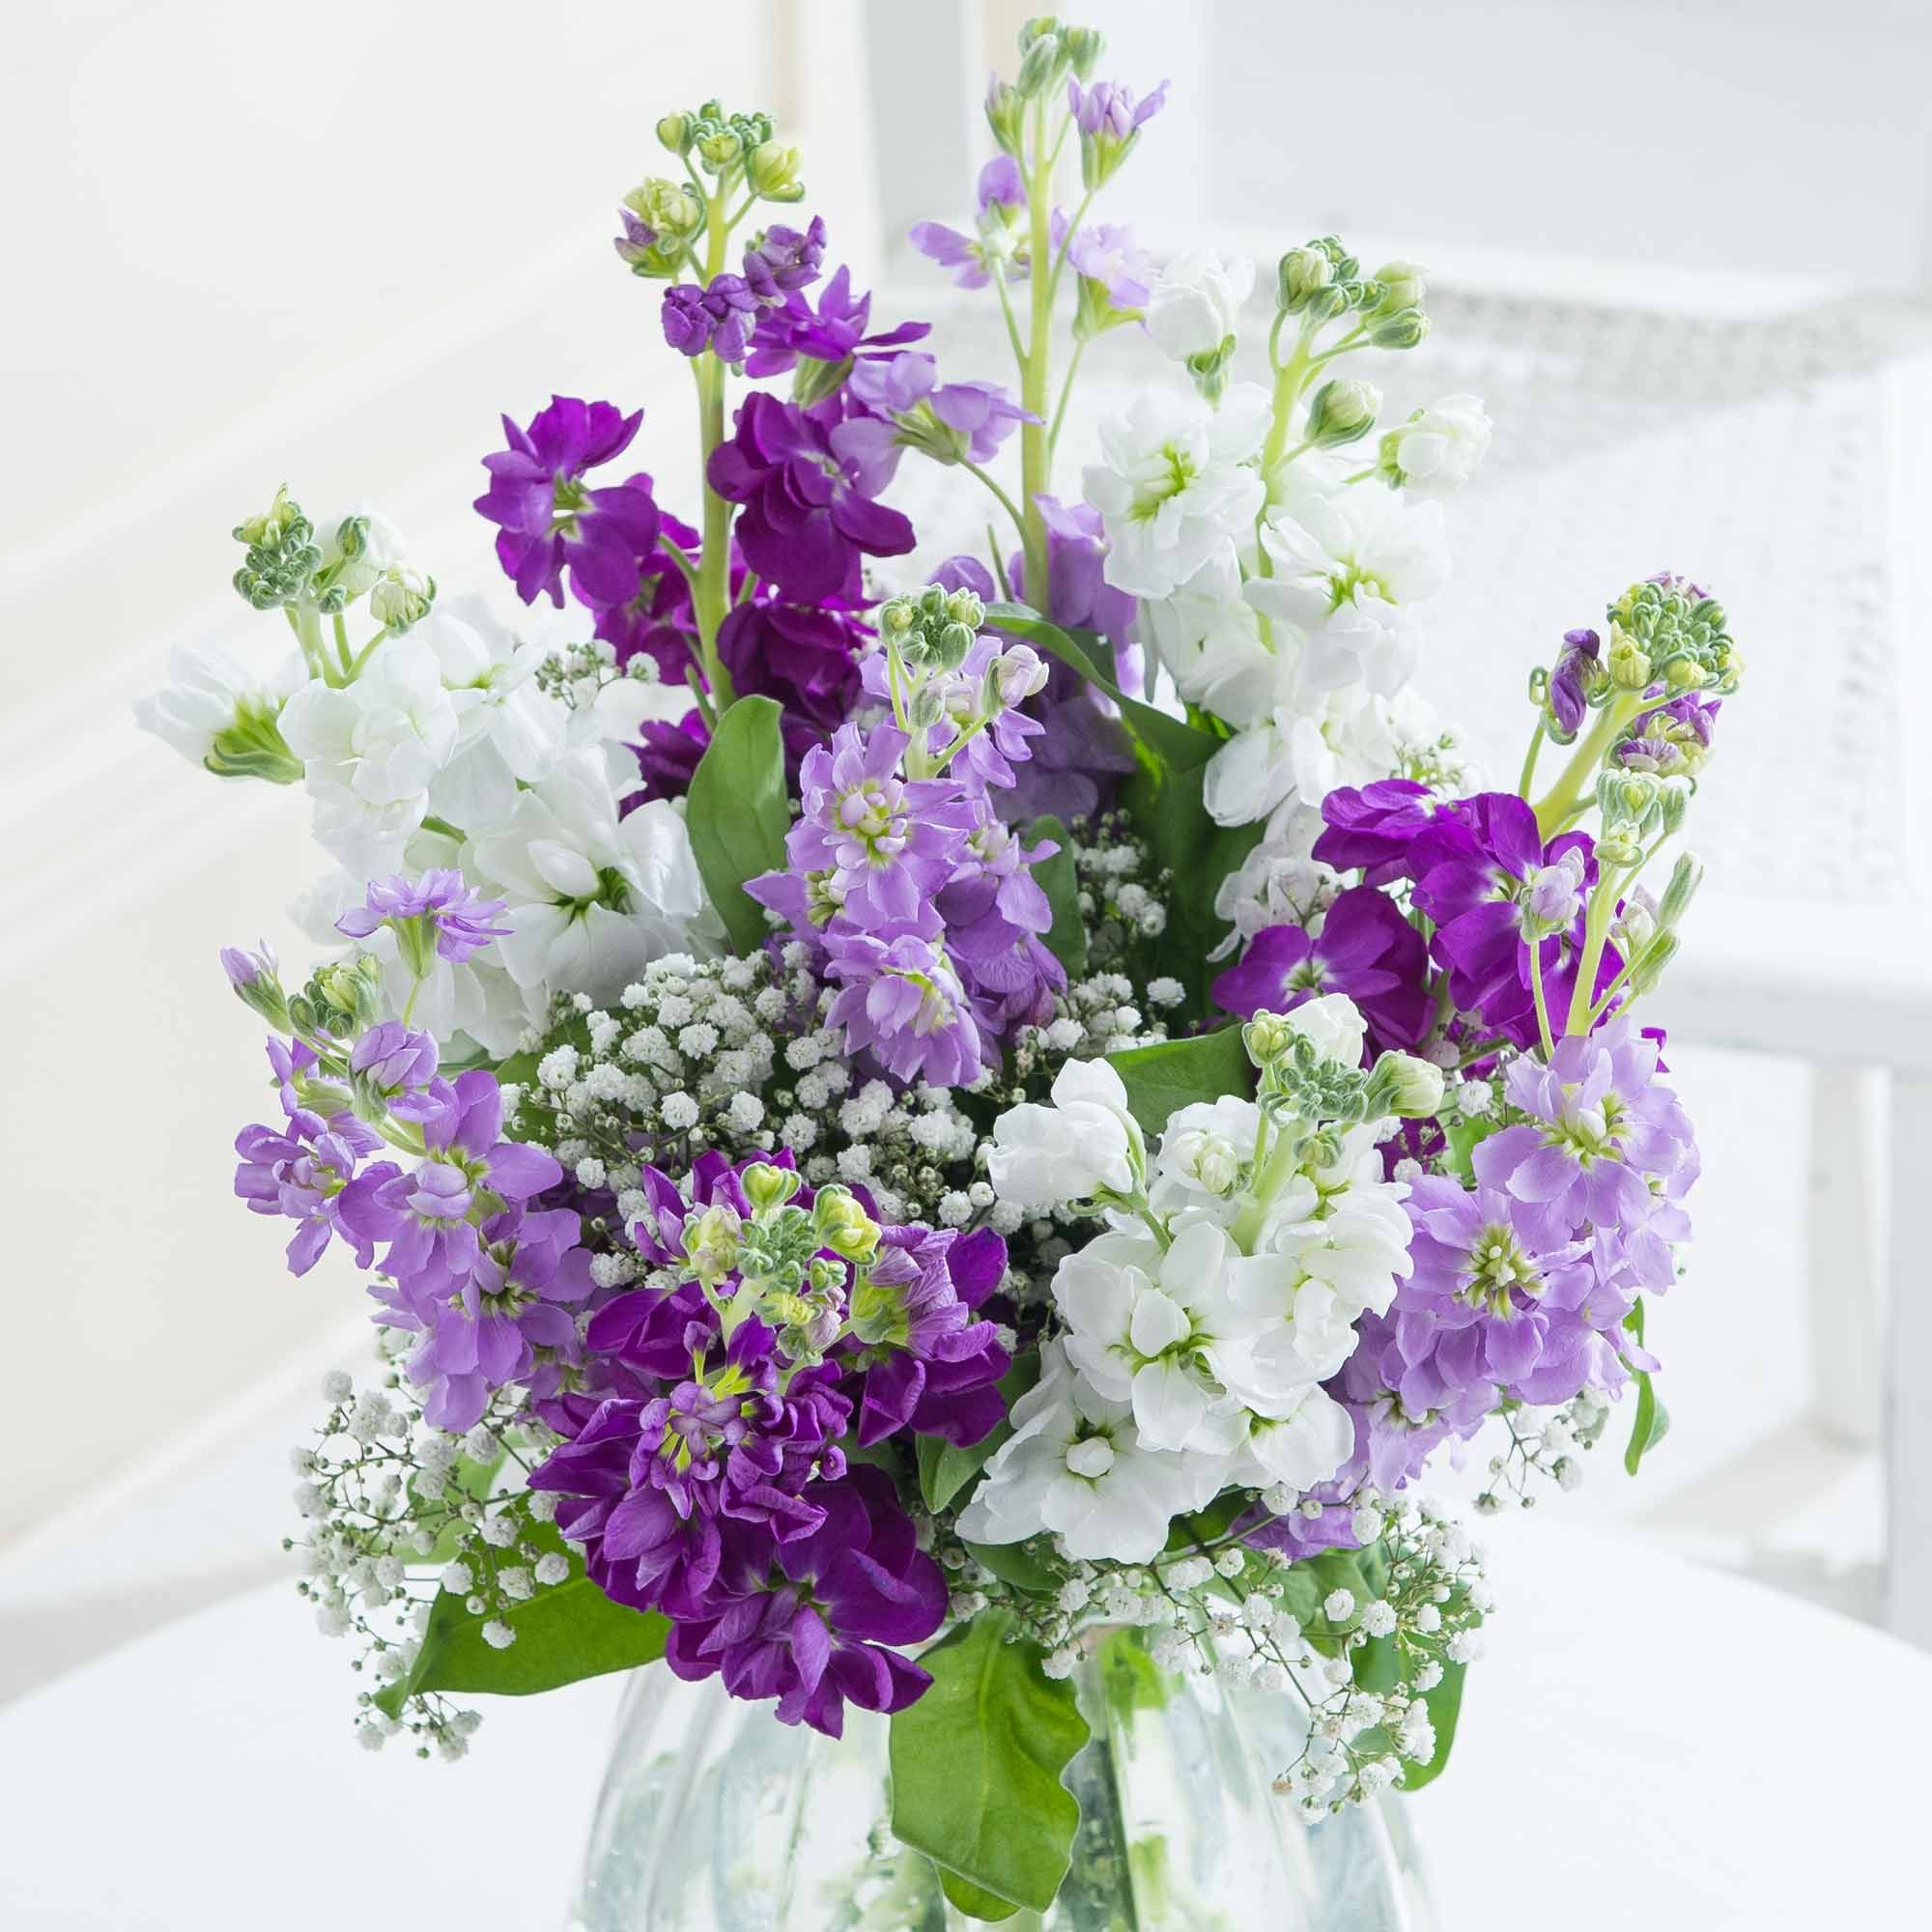 Pretty In Bloom - A gorgeous arrangement that smells heavenly too, this mix of stunning stocks in lilac, purple and white tones is sure to delight your loved one.